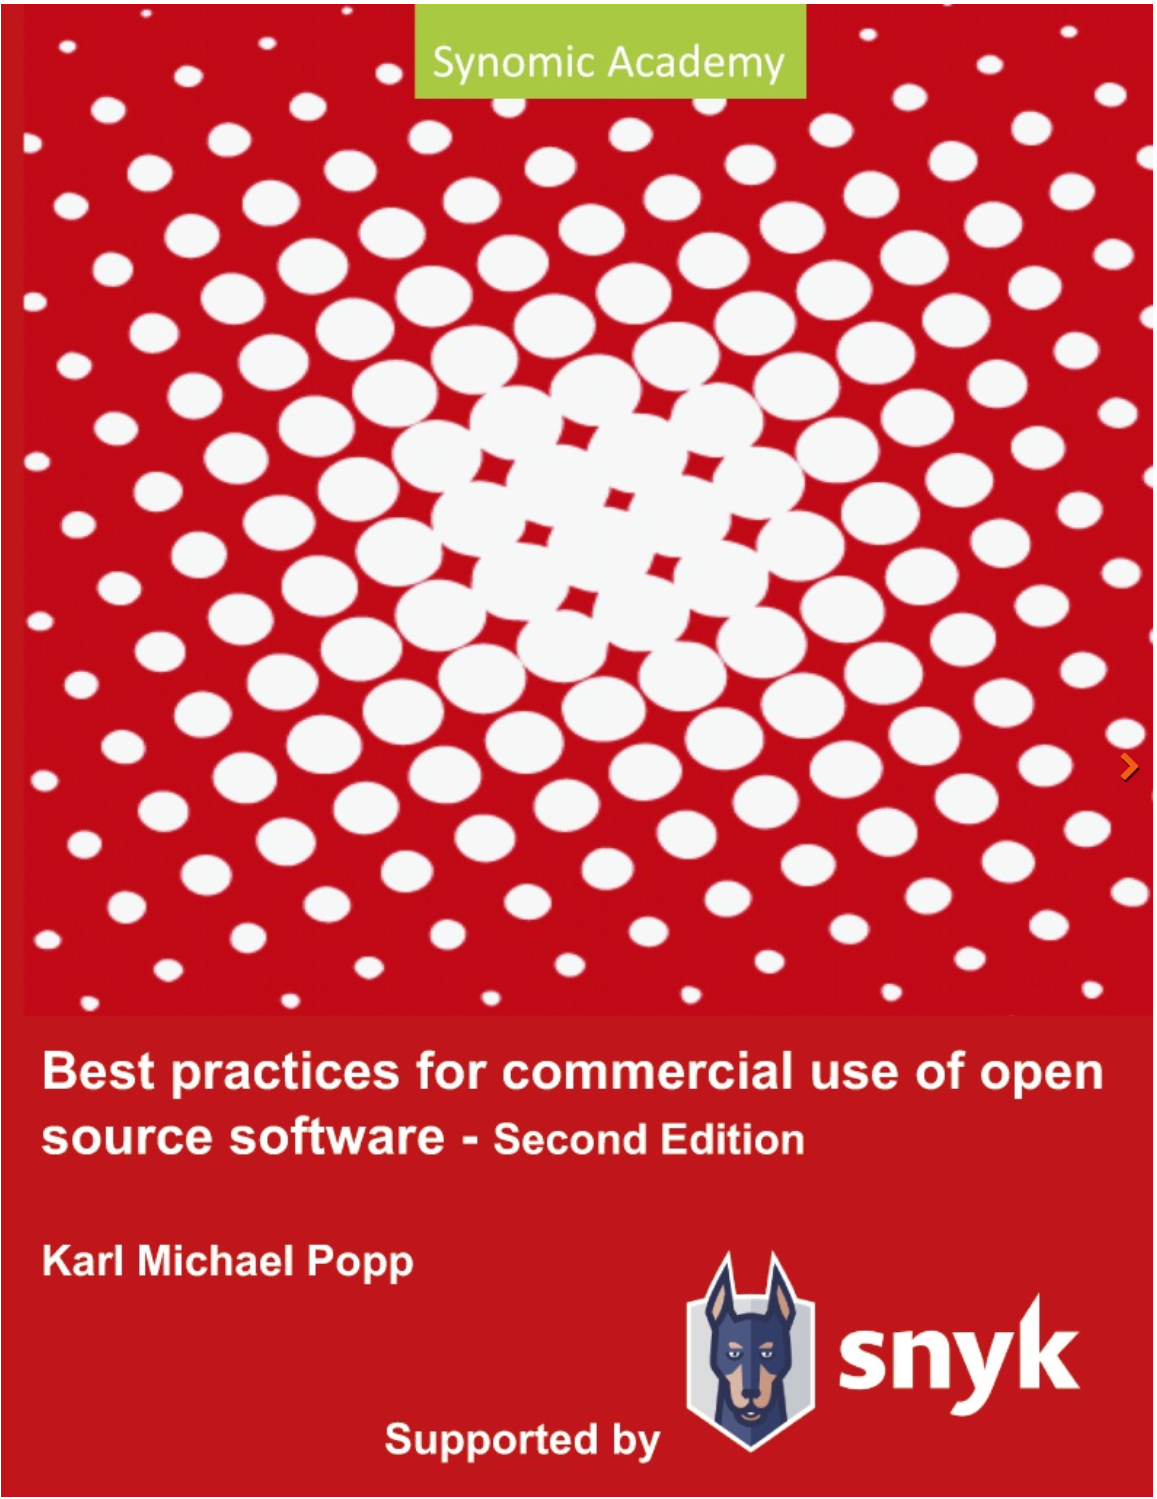 "Open Source book - With this second, extended edition, you are well equipped to reach excellence with knowledge about best practices for open source business models as well as open source licensing, governance. This section of the website is meant to provide you with the latest knowledge about open source, esp. open source licensing in commercial software, to reach excellence in open source matters. Please find more information in the book ""Best practices for commercial use of open source software""."